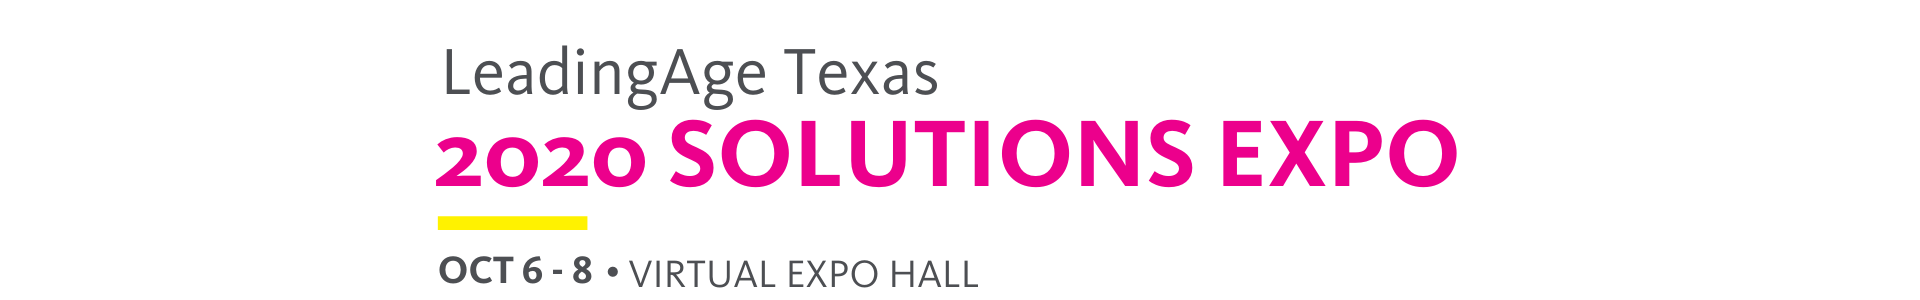 LeadingAge Texas 2020 Solutions EXPO • Frisco